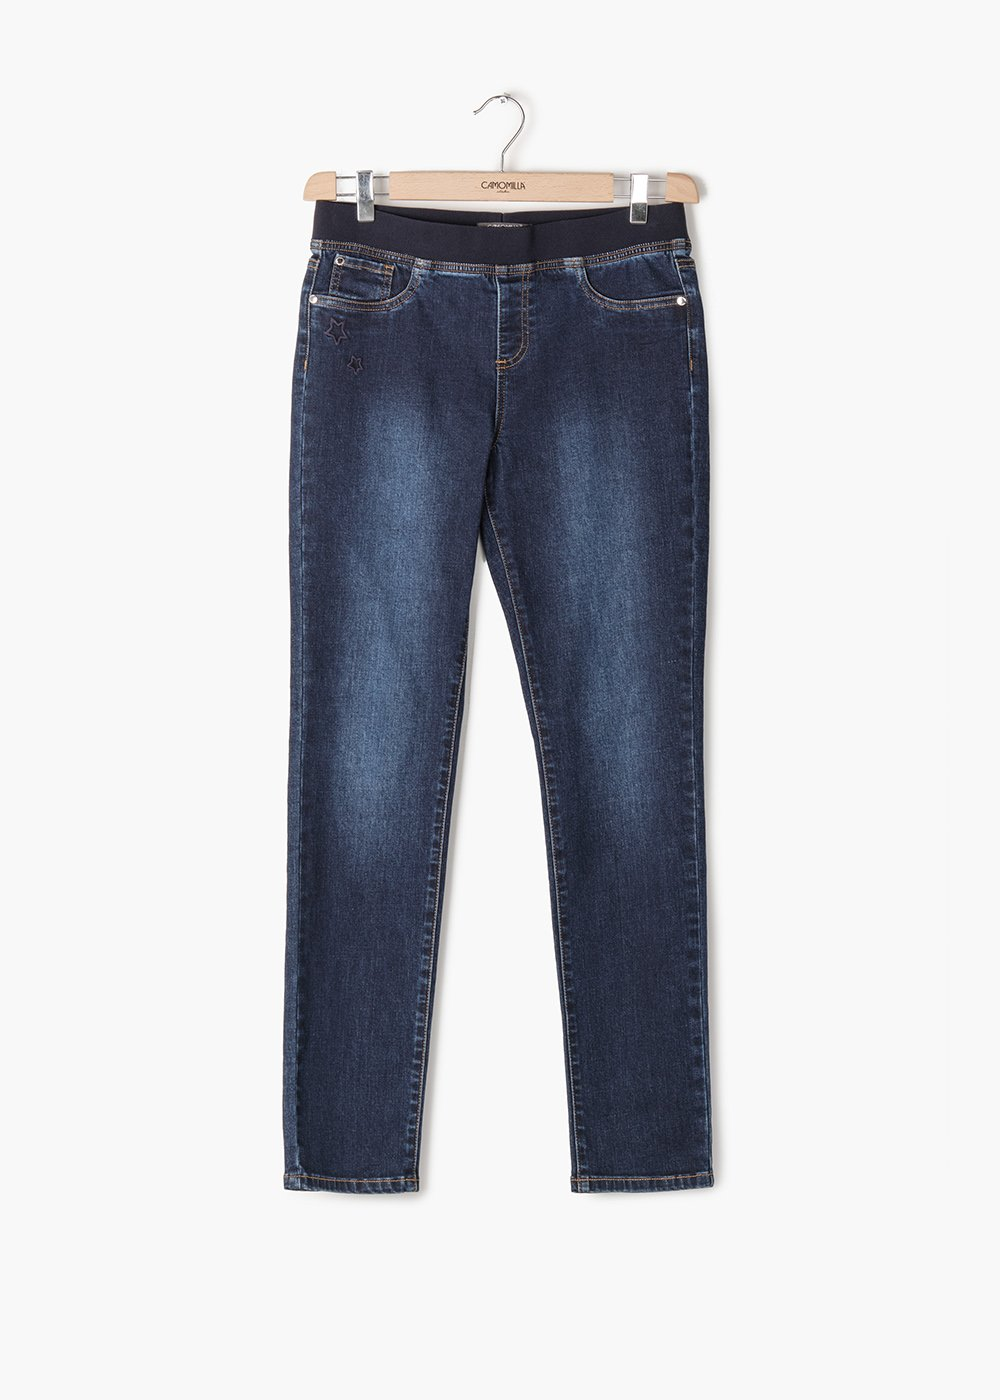 Pantaloni Denver in denim modello Kelly - Denim - Donna